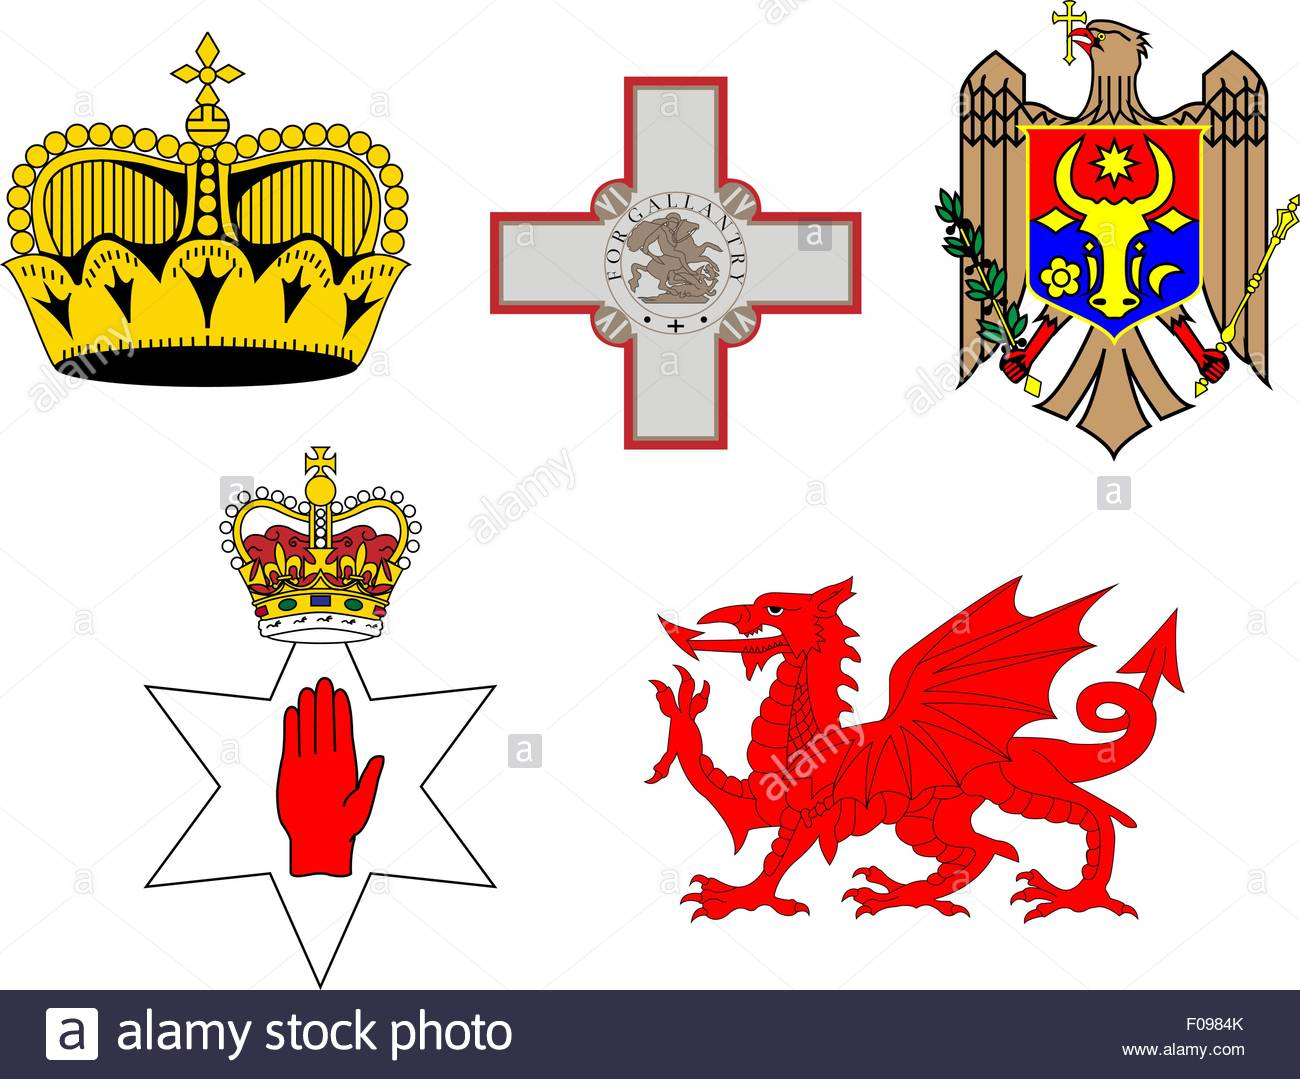 Coats of Arms of European Flags 3 - Stock Vector